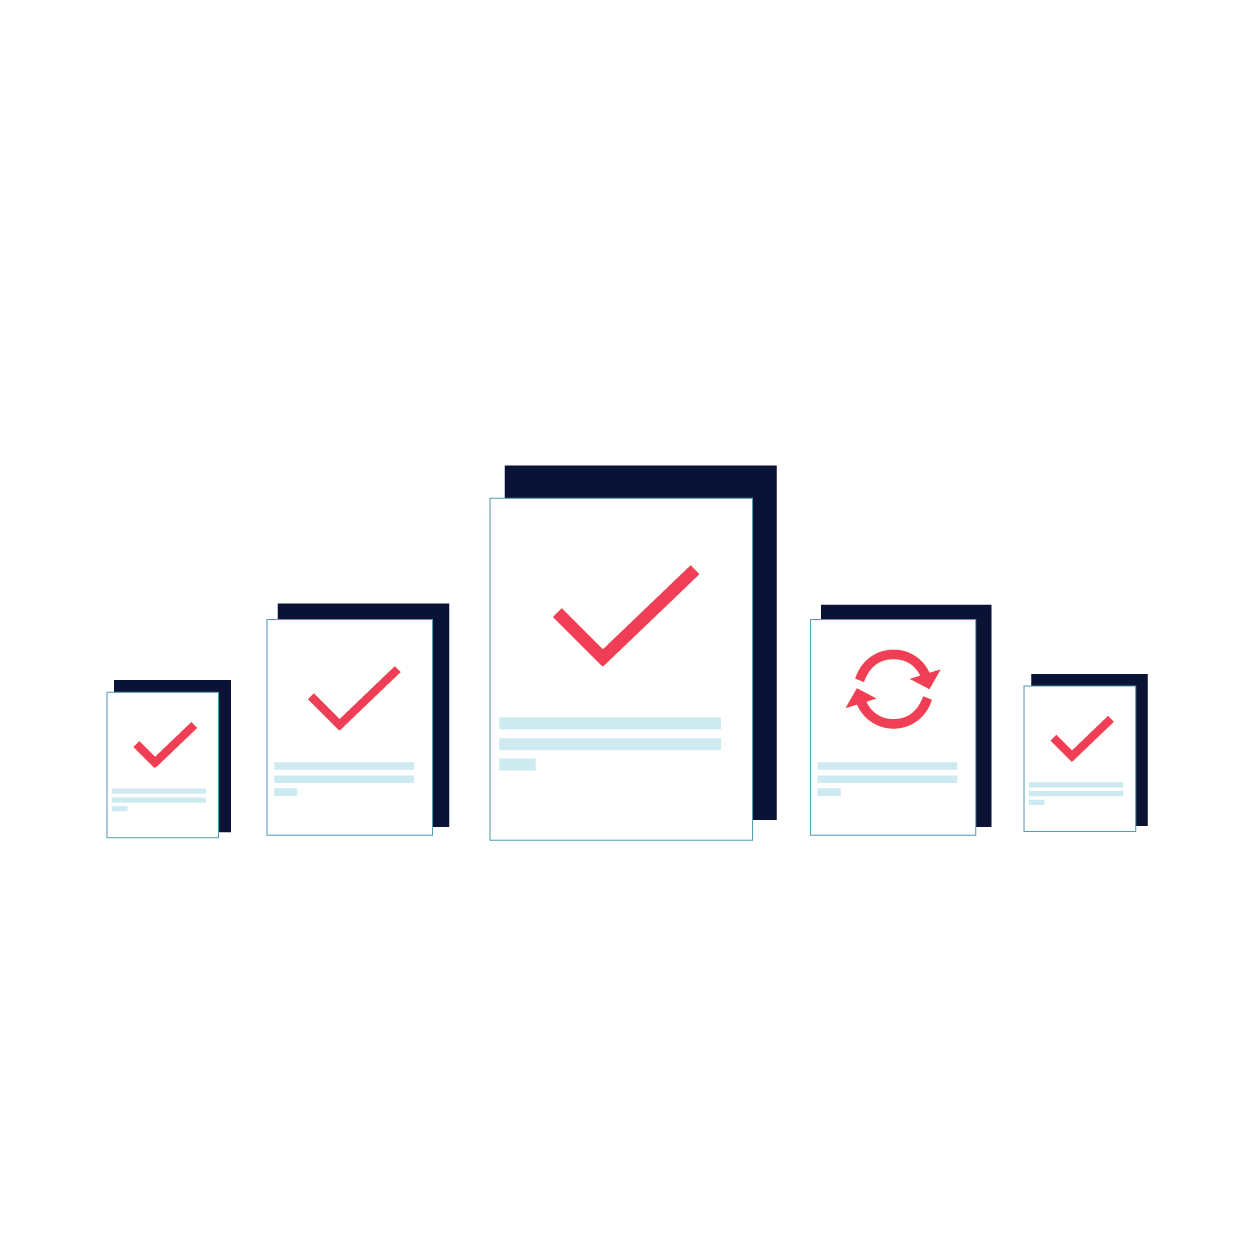 Iconography demonstrating evaluation of a training process